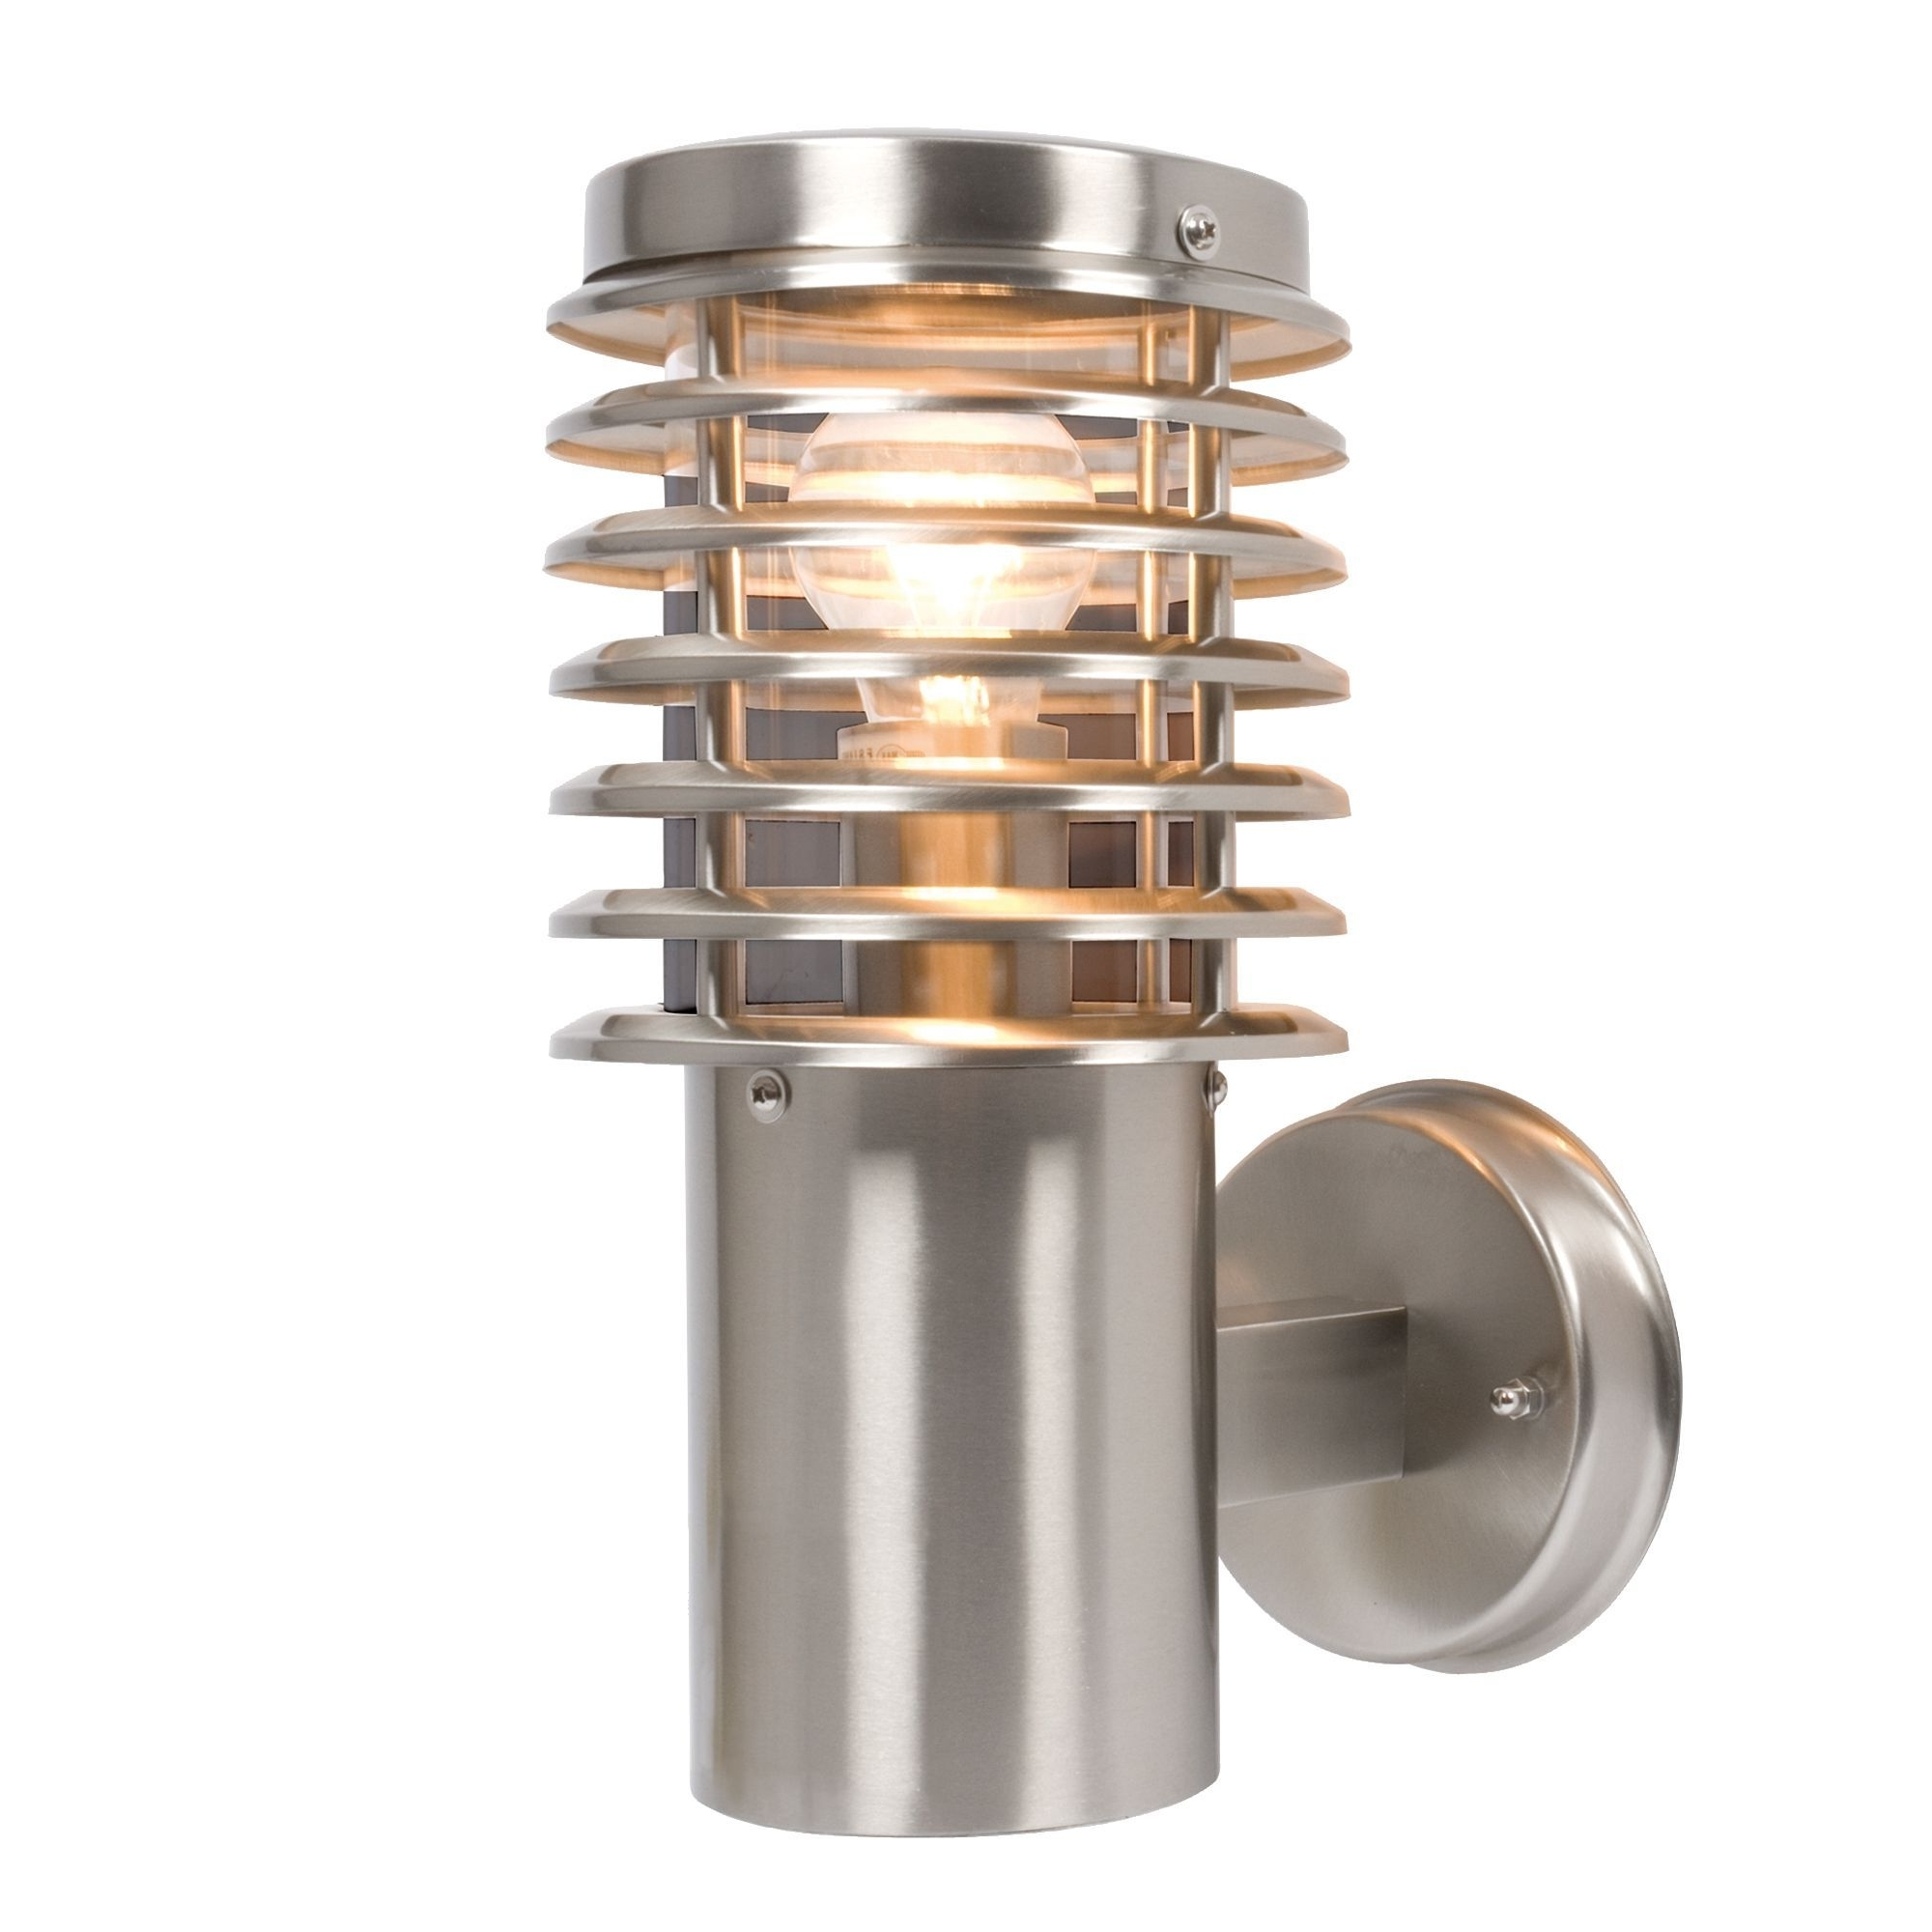 Led Outdoor Raccoon Wall Lights With Motion Detector Within Well Known Clipper Stainless Steel Mains Powered External Wall Light (View 12 of 20)